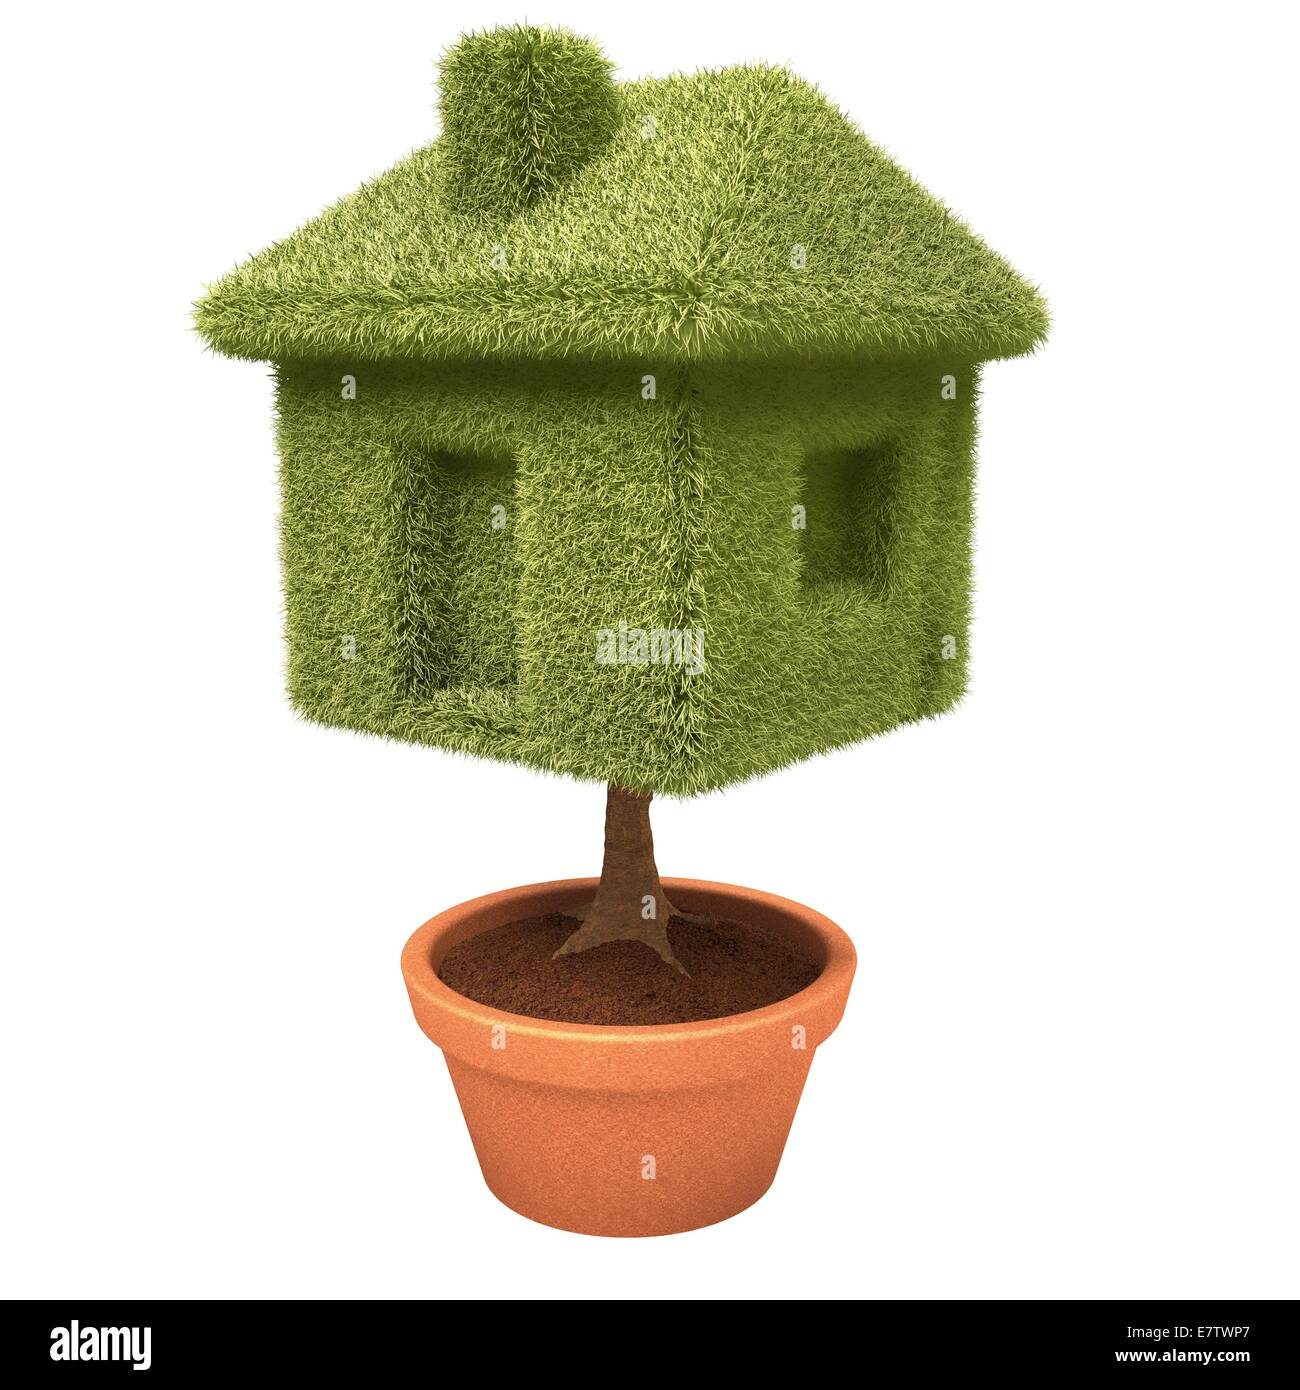 Home ownership, conceptual artwork. - Stock Image